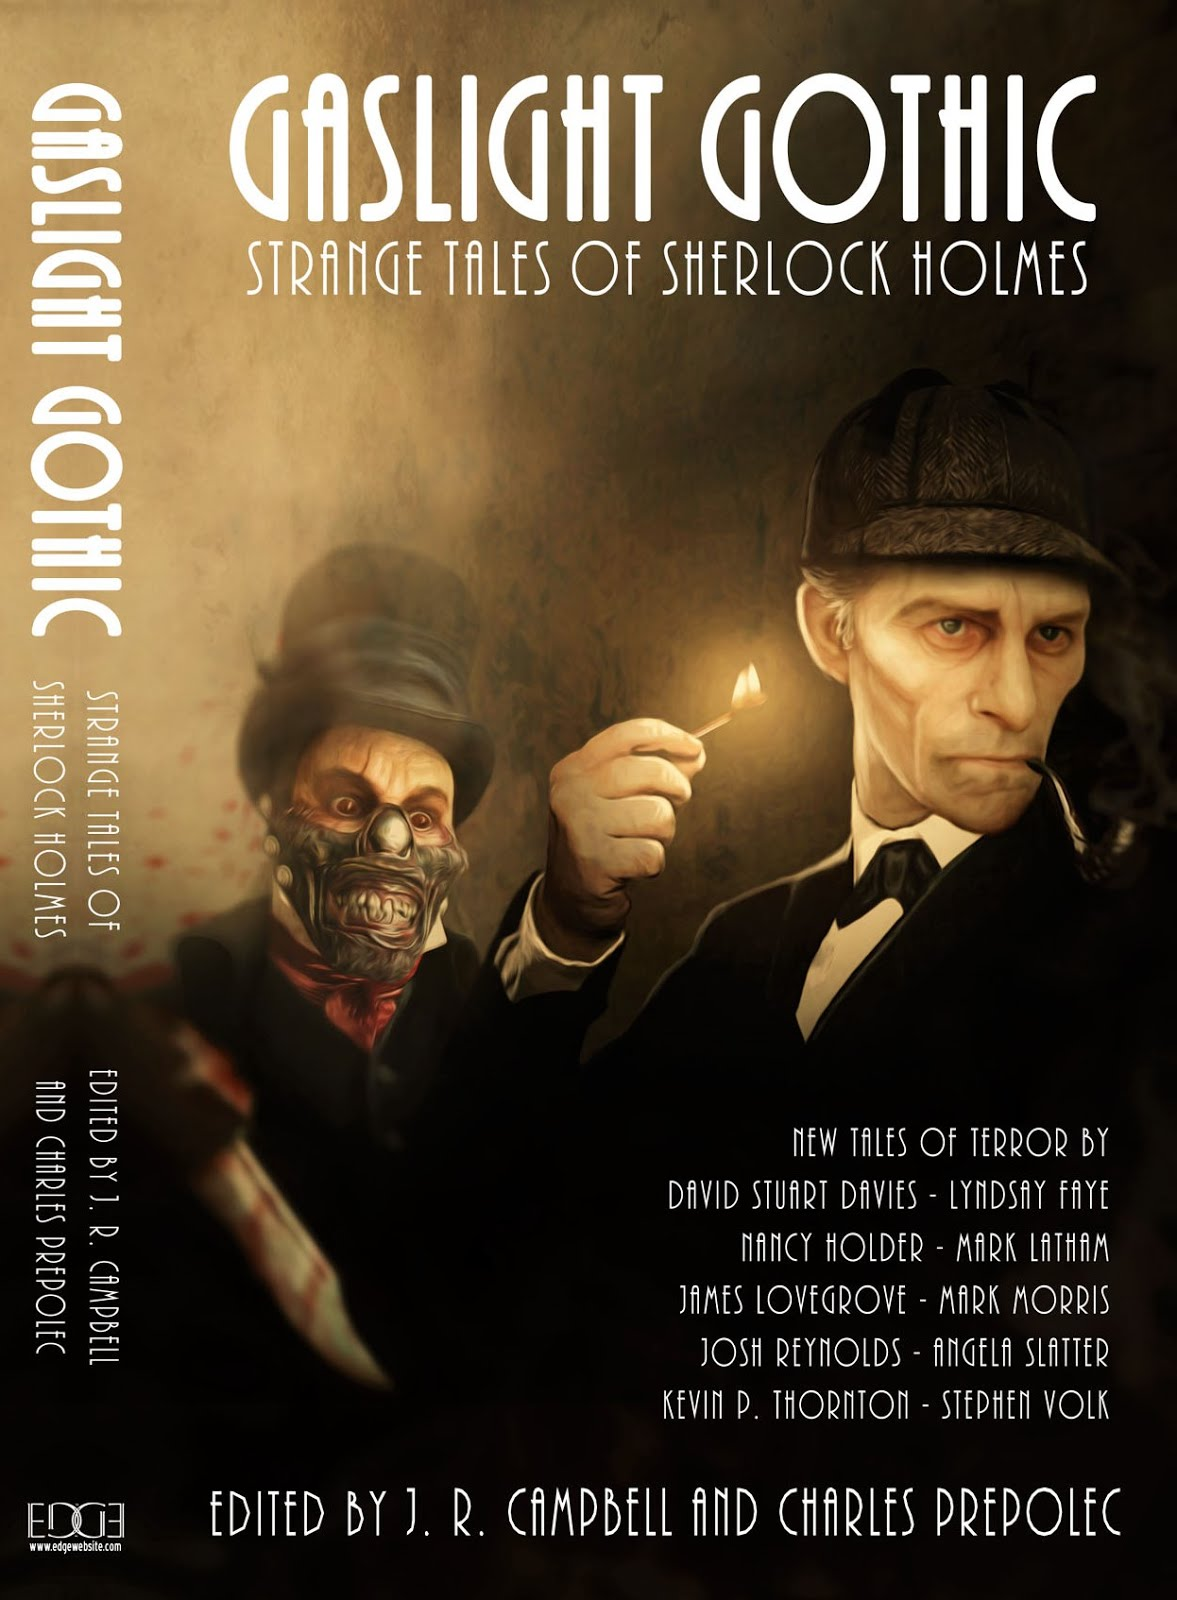 Gaslight Gothic: Strange Tales of Sherlock Holmes - New Anthology